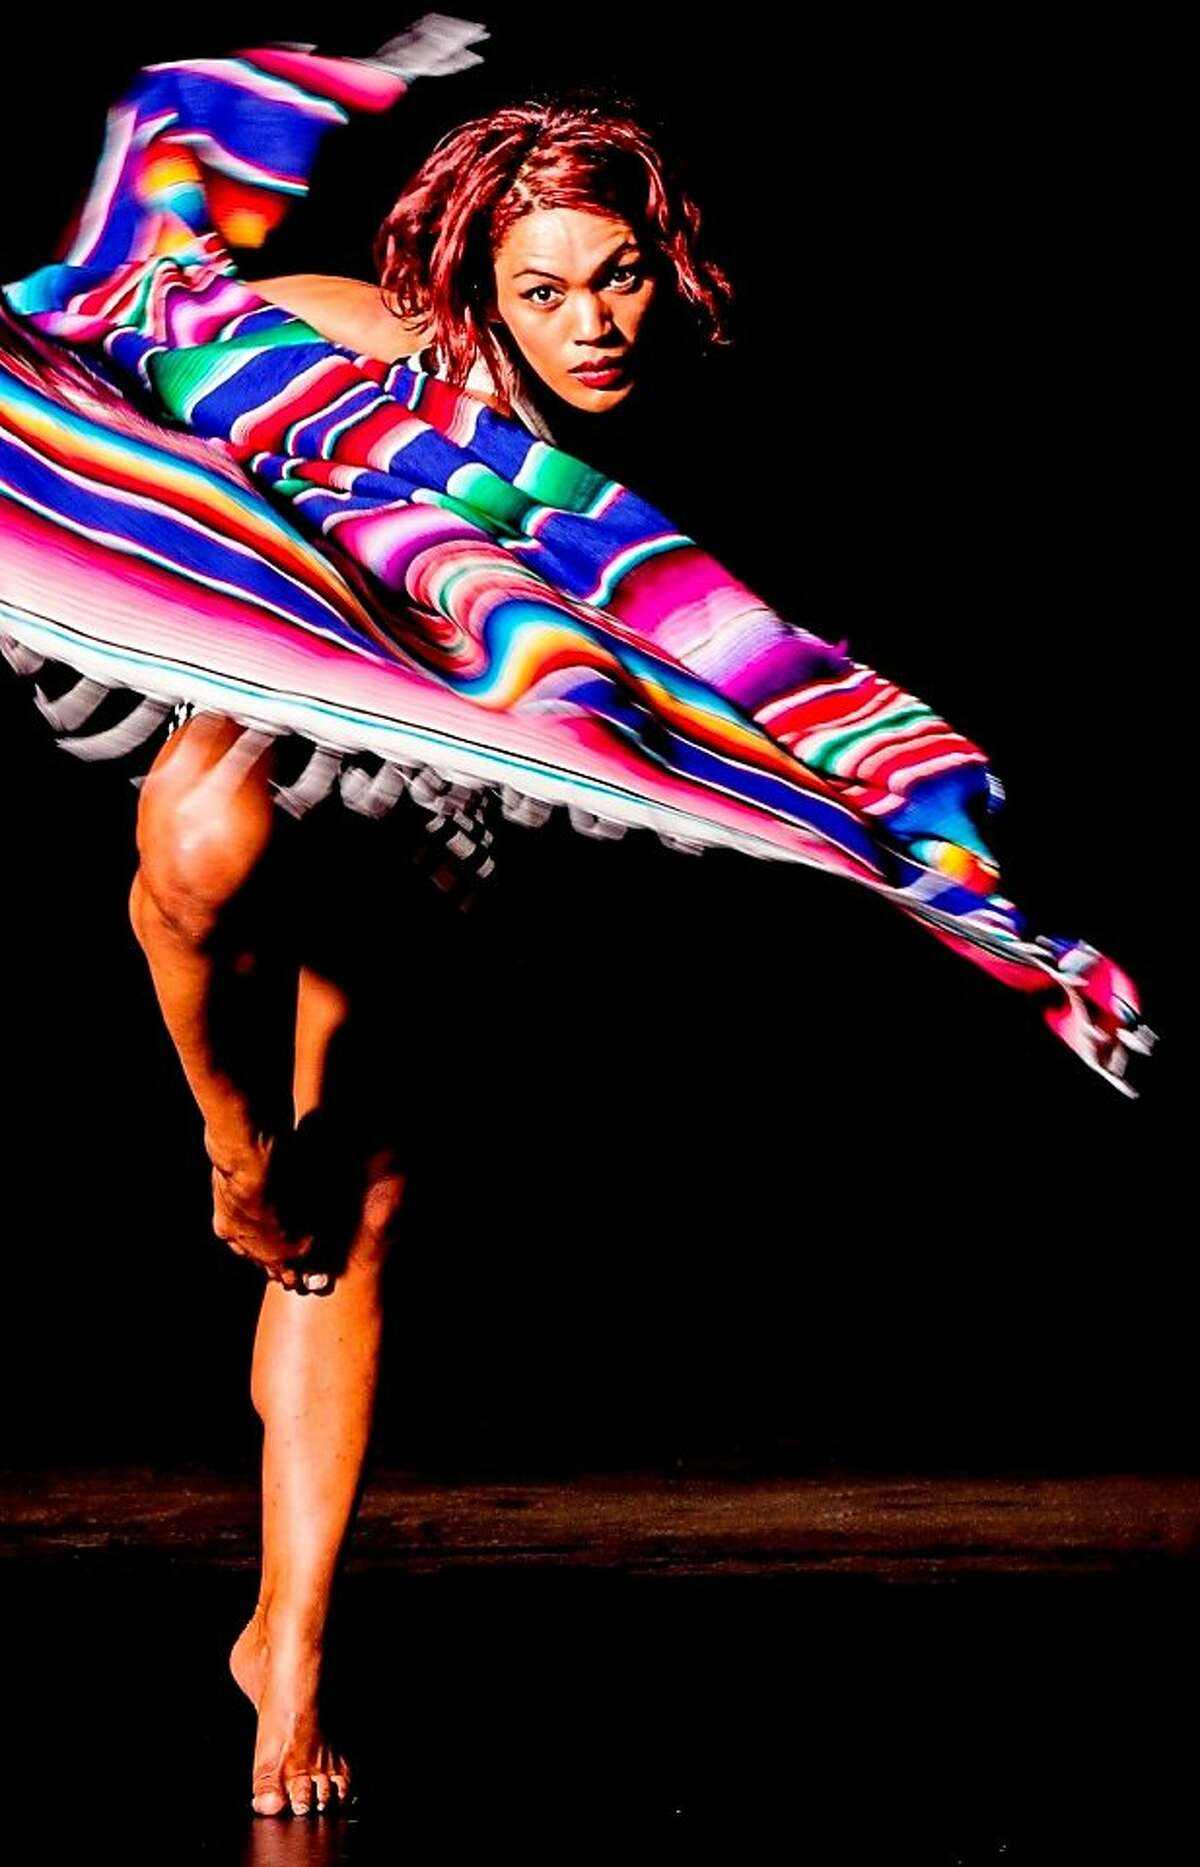 Atamira Dance Company contemporary Maori ensemble makes its San Francisco debut as part of the S.F. Int'l Arts Festival at 8 p.m. July 27 at Joe Goode Performance Annex, 401 Alabama St. $18-$25. (800) 838-3006, www.sfiaf.org. Pictured: member Nancy Wijohn performing a solo from Indigenarchy (choreography by Kelly Nash, premiere July 2012, Auckland, New Zealand) in a photograph by John McDermott.